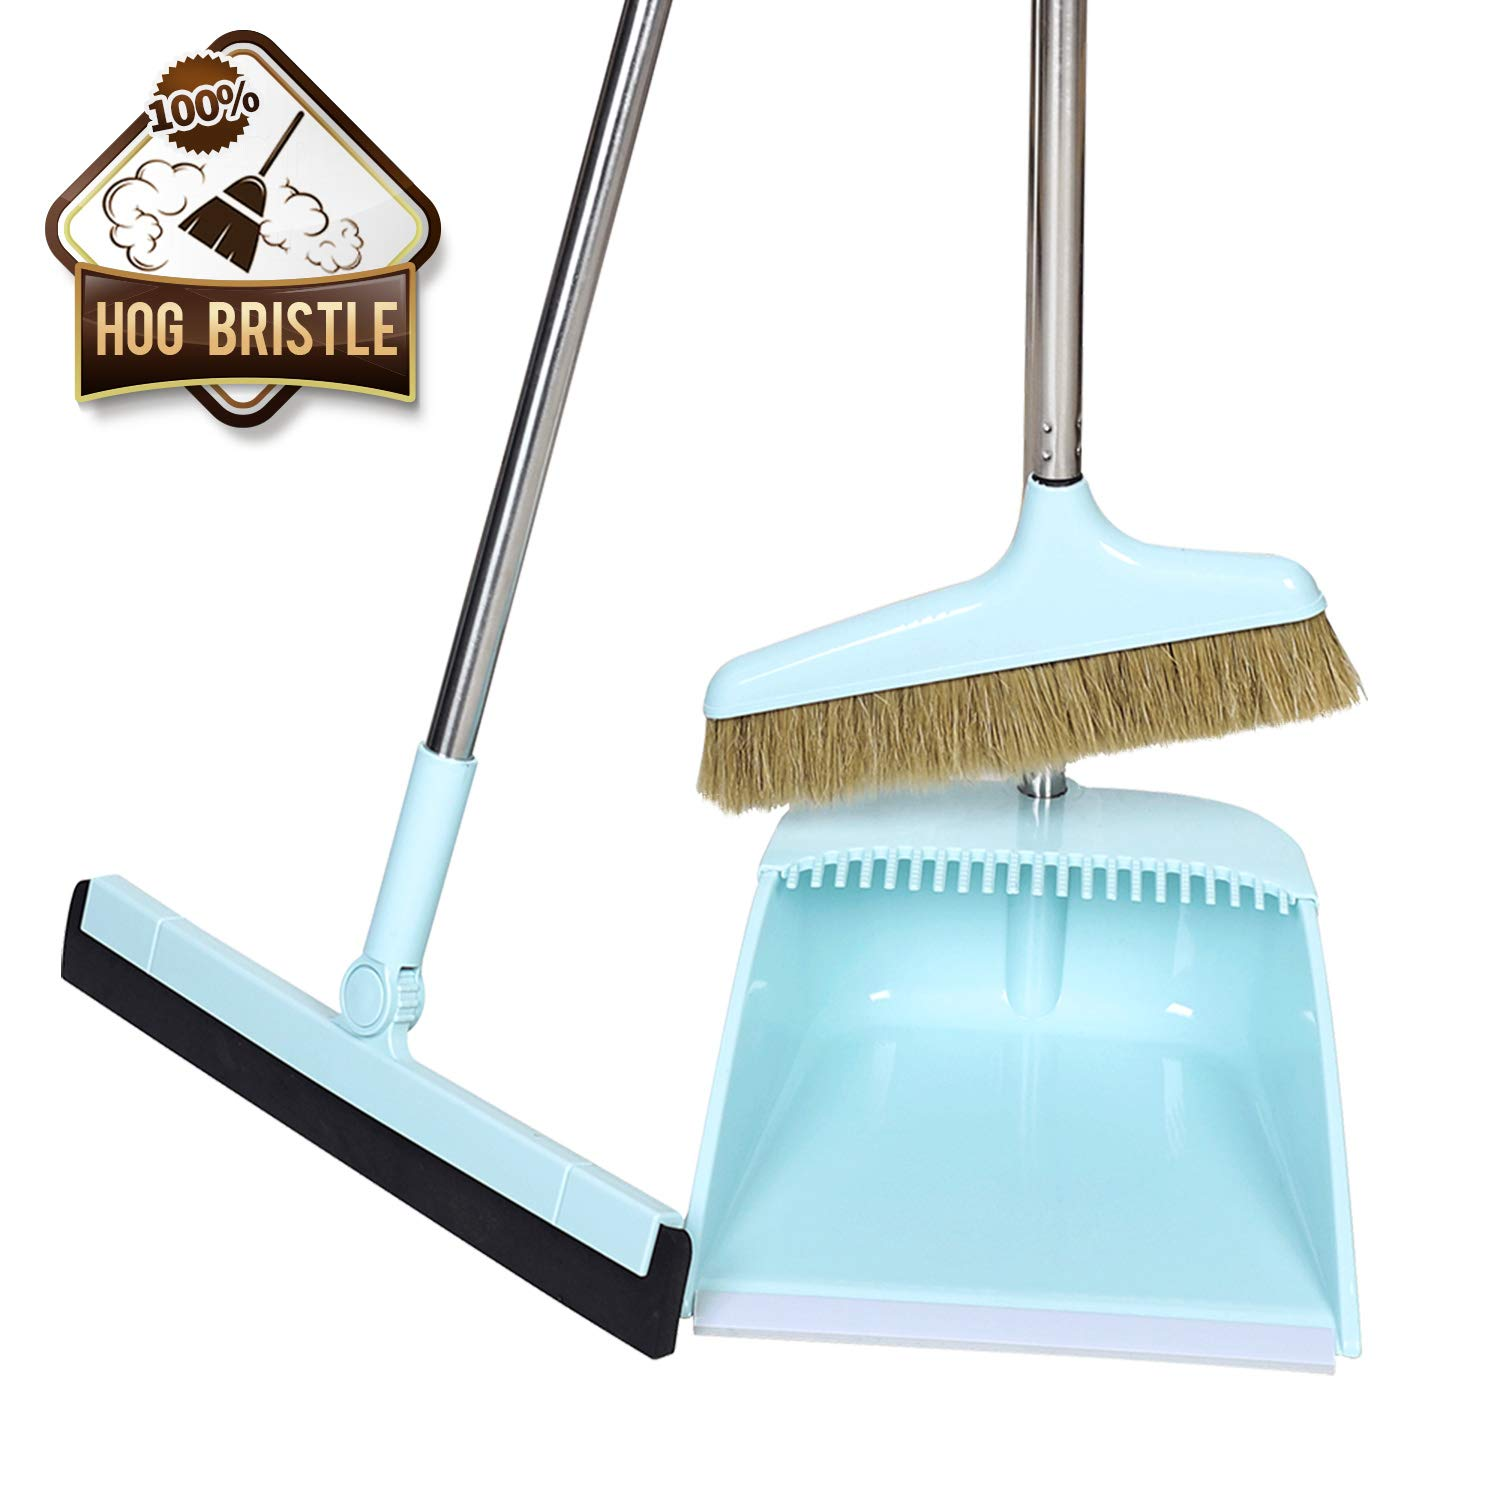 Midoneat Broom and Dustpan Set Squeegee 3 Packs Good Grips Sweep Set with Long Handle Natural hog Bristle Broom Rubber Lip Dustpan with Comb 180° Rotation Wiper .Sweeping for Kitchen Lobby Office